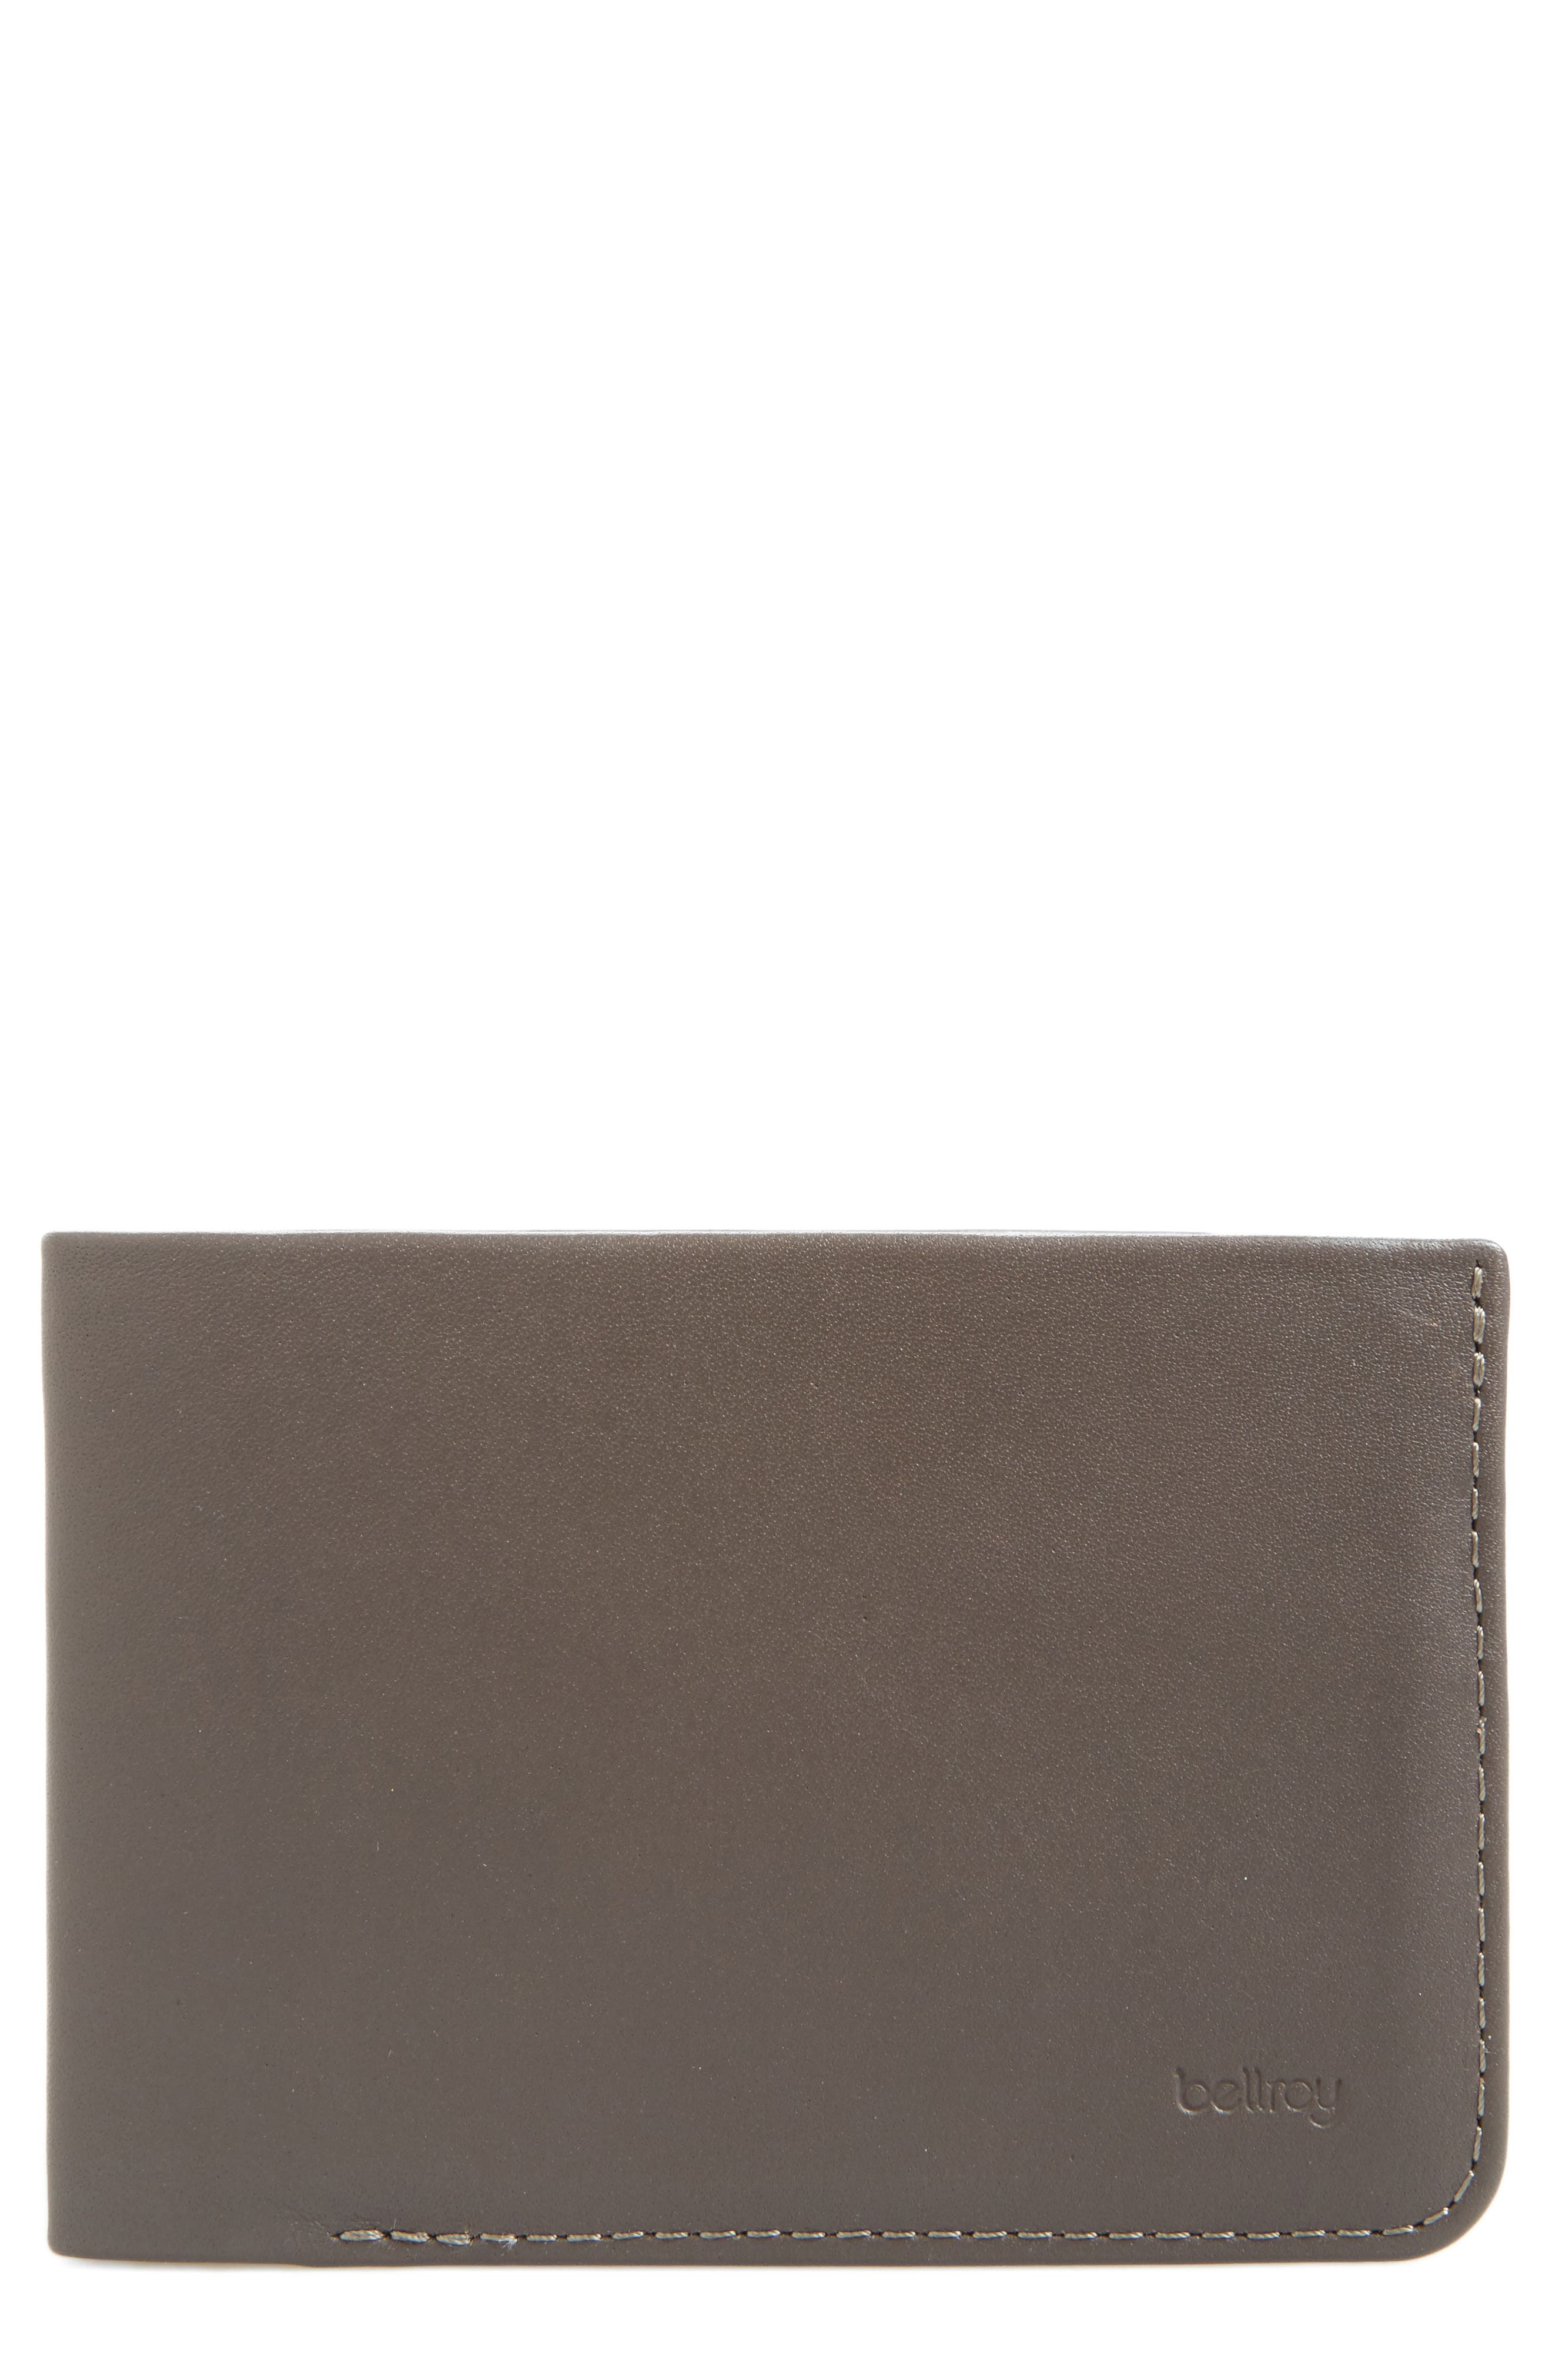 Low Down Leather Wallet,                         Main,                         color, Charcoal